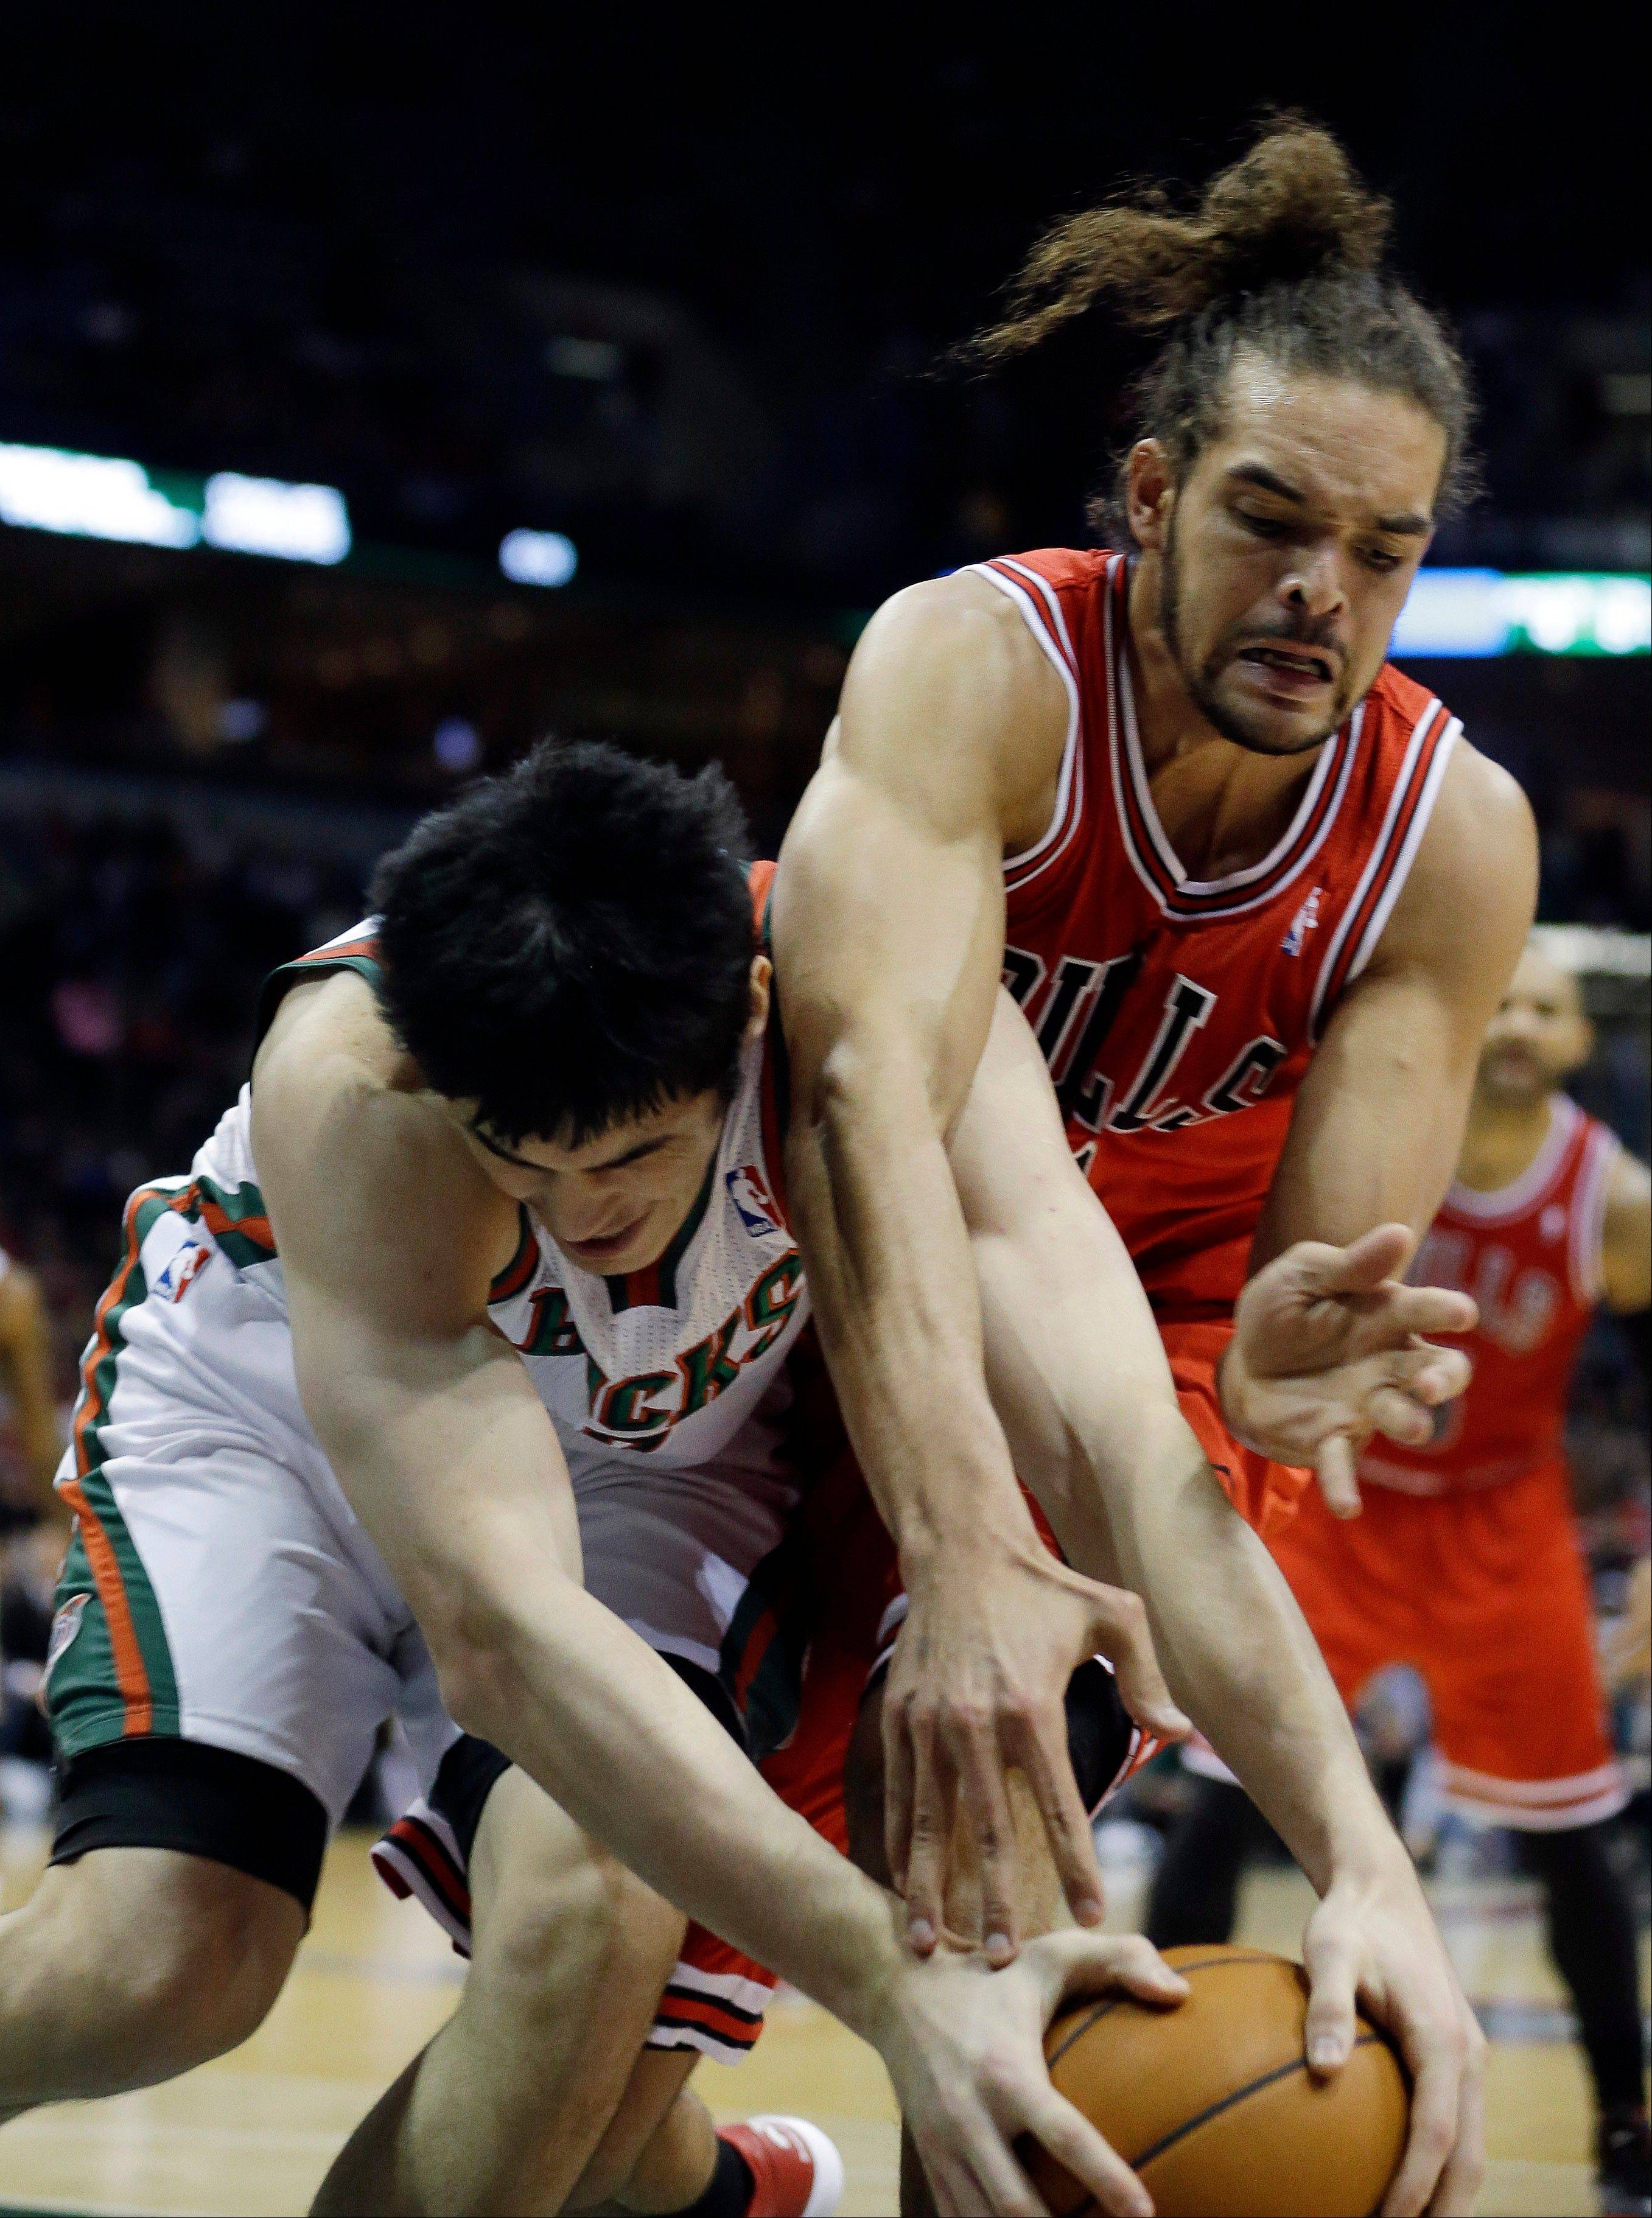 The Bulls� Joakim Noah, right, battles the Bucks� Ersan Ilyasova battle for the loose ball Saturday night at Milwaukee.